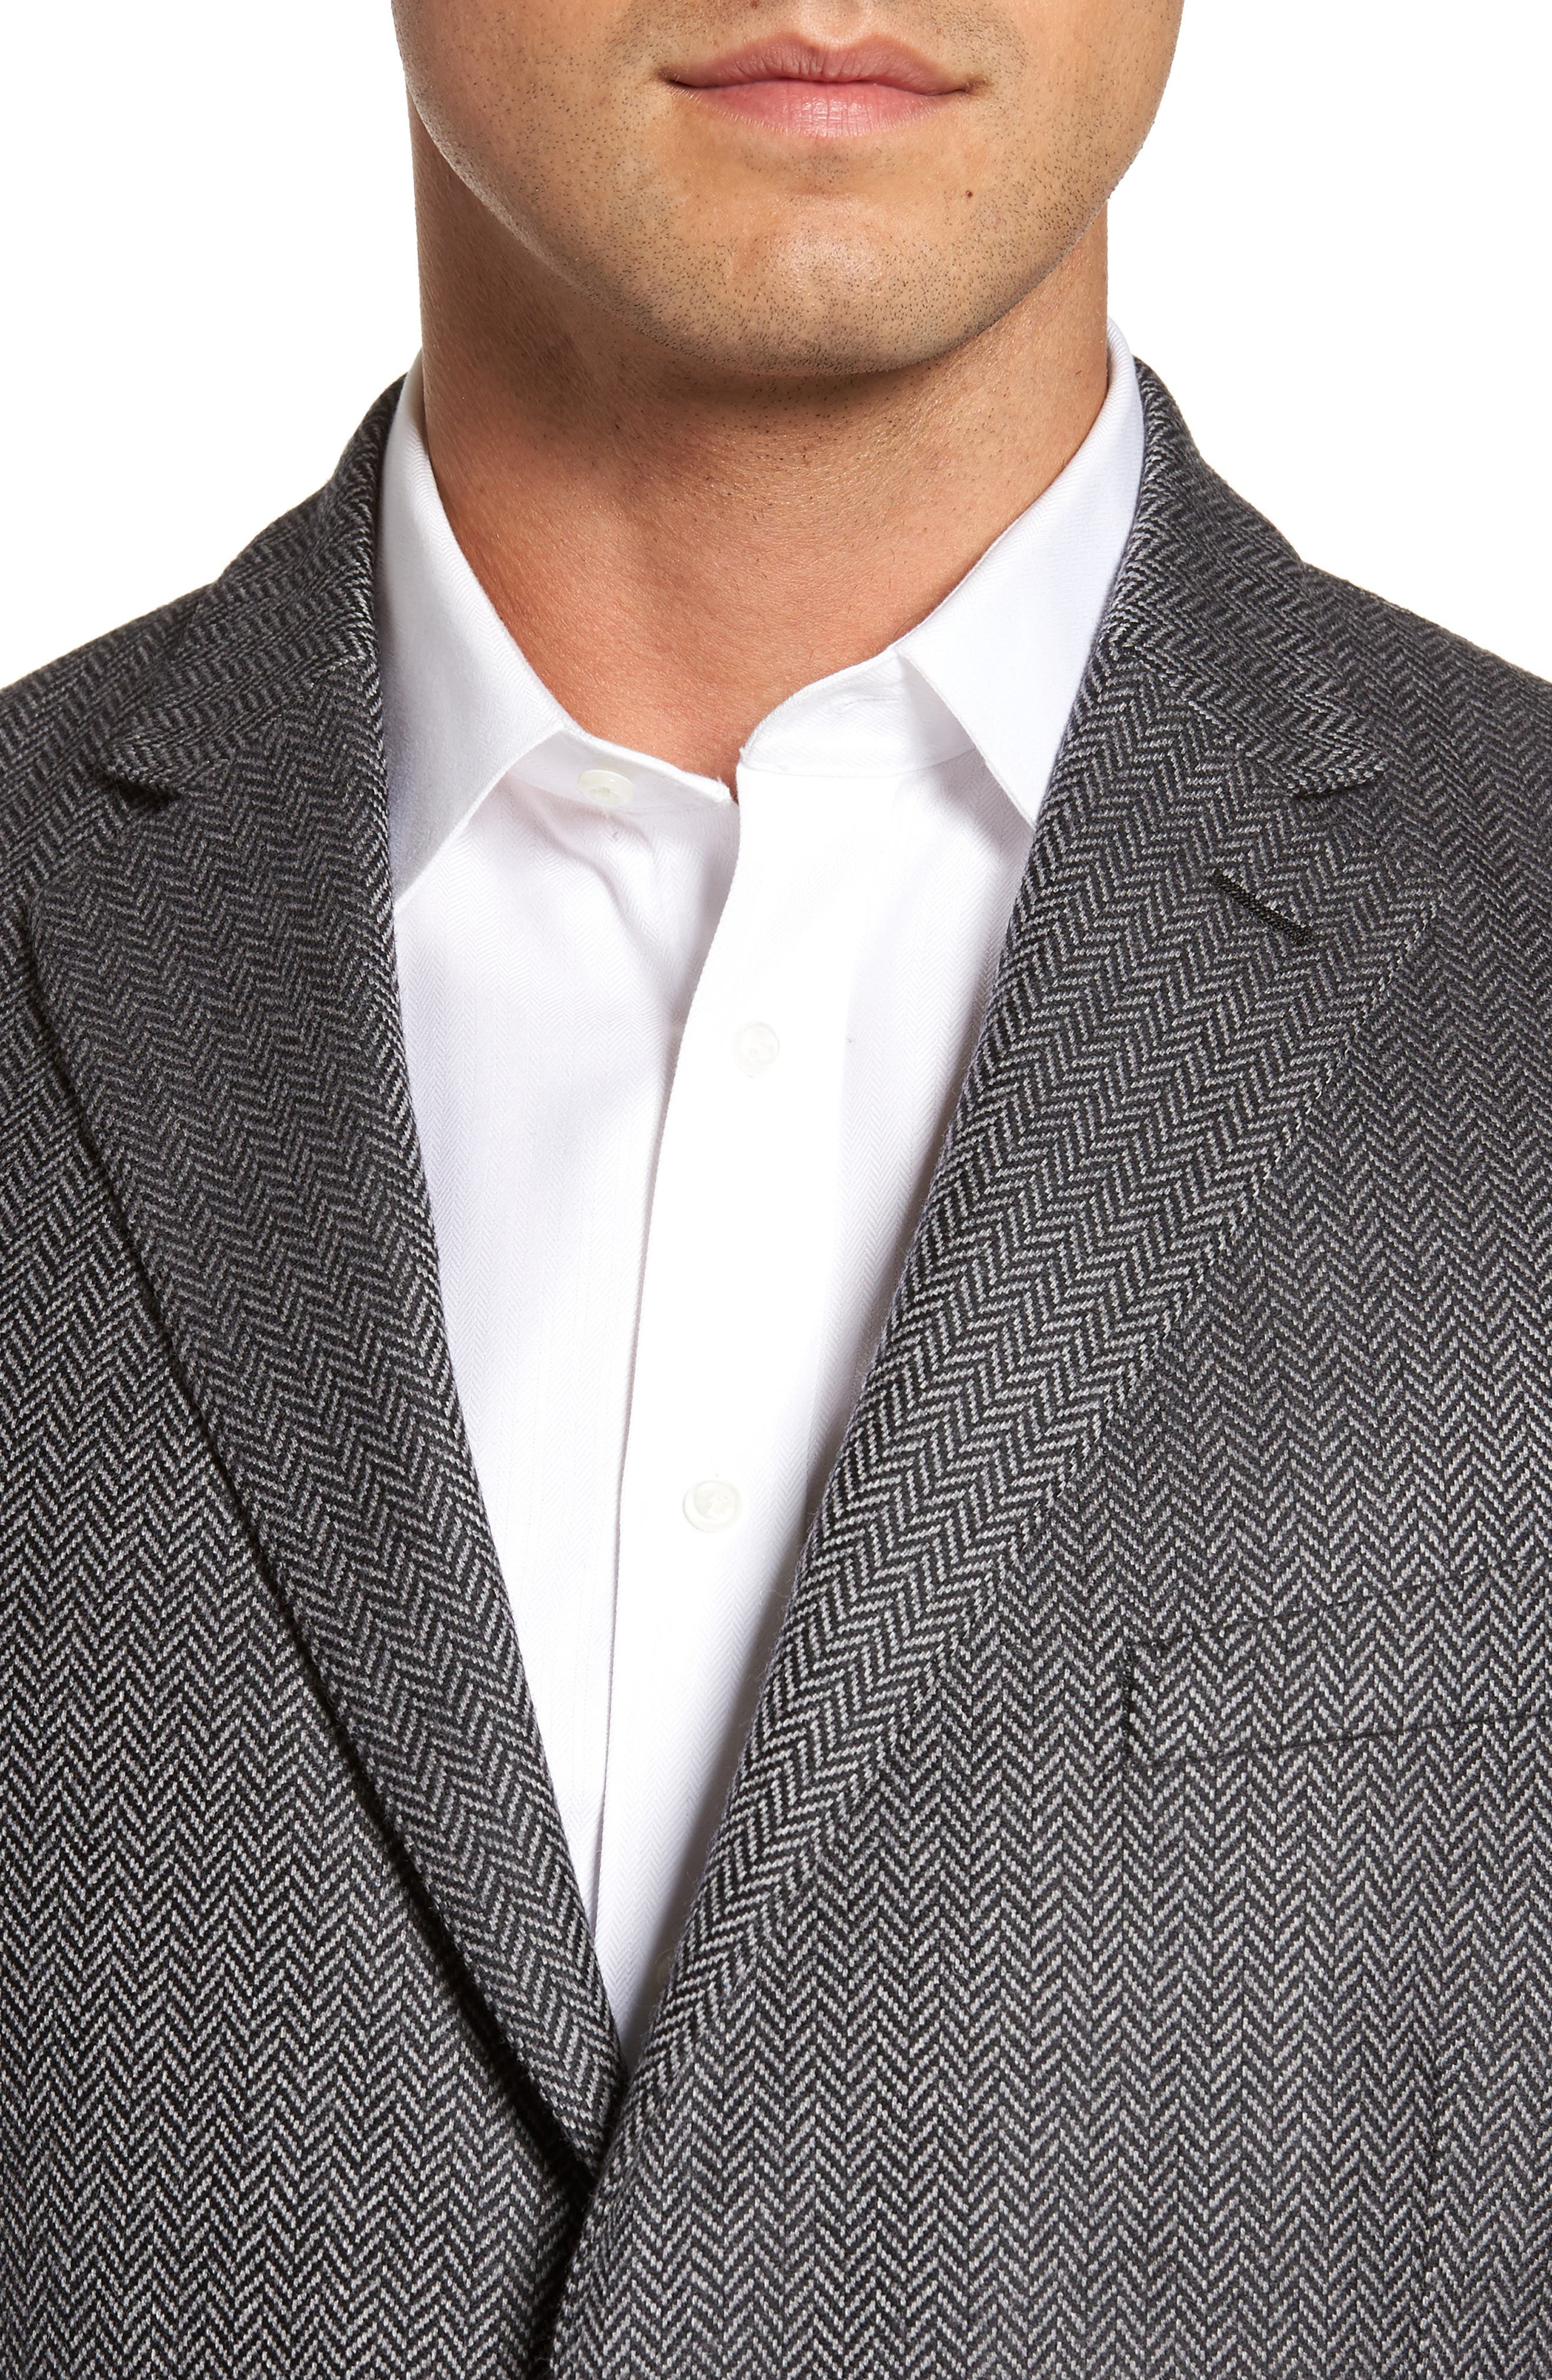 Alternate Image 4  - FLYNT Classic Fit Herringbone Wool & Cashmere Jersey Sport Coat